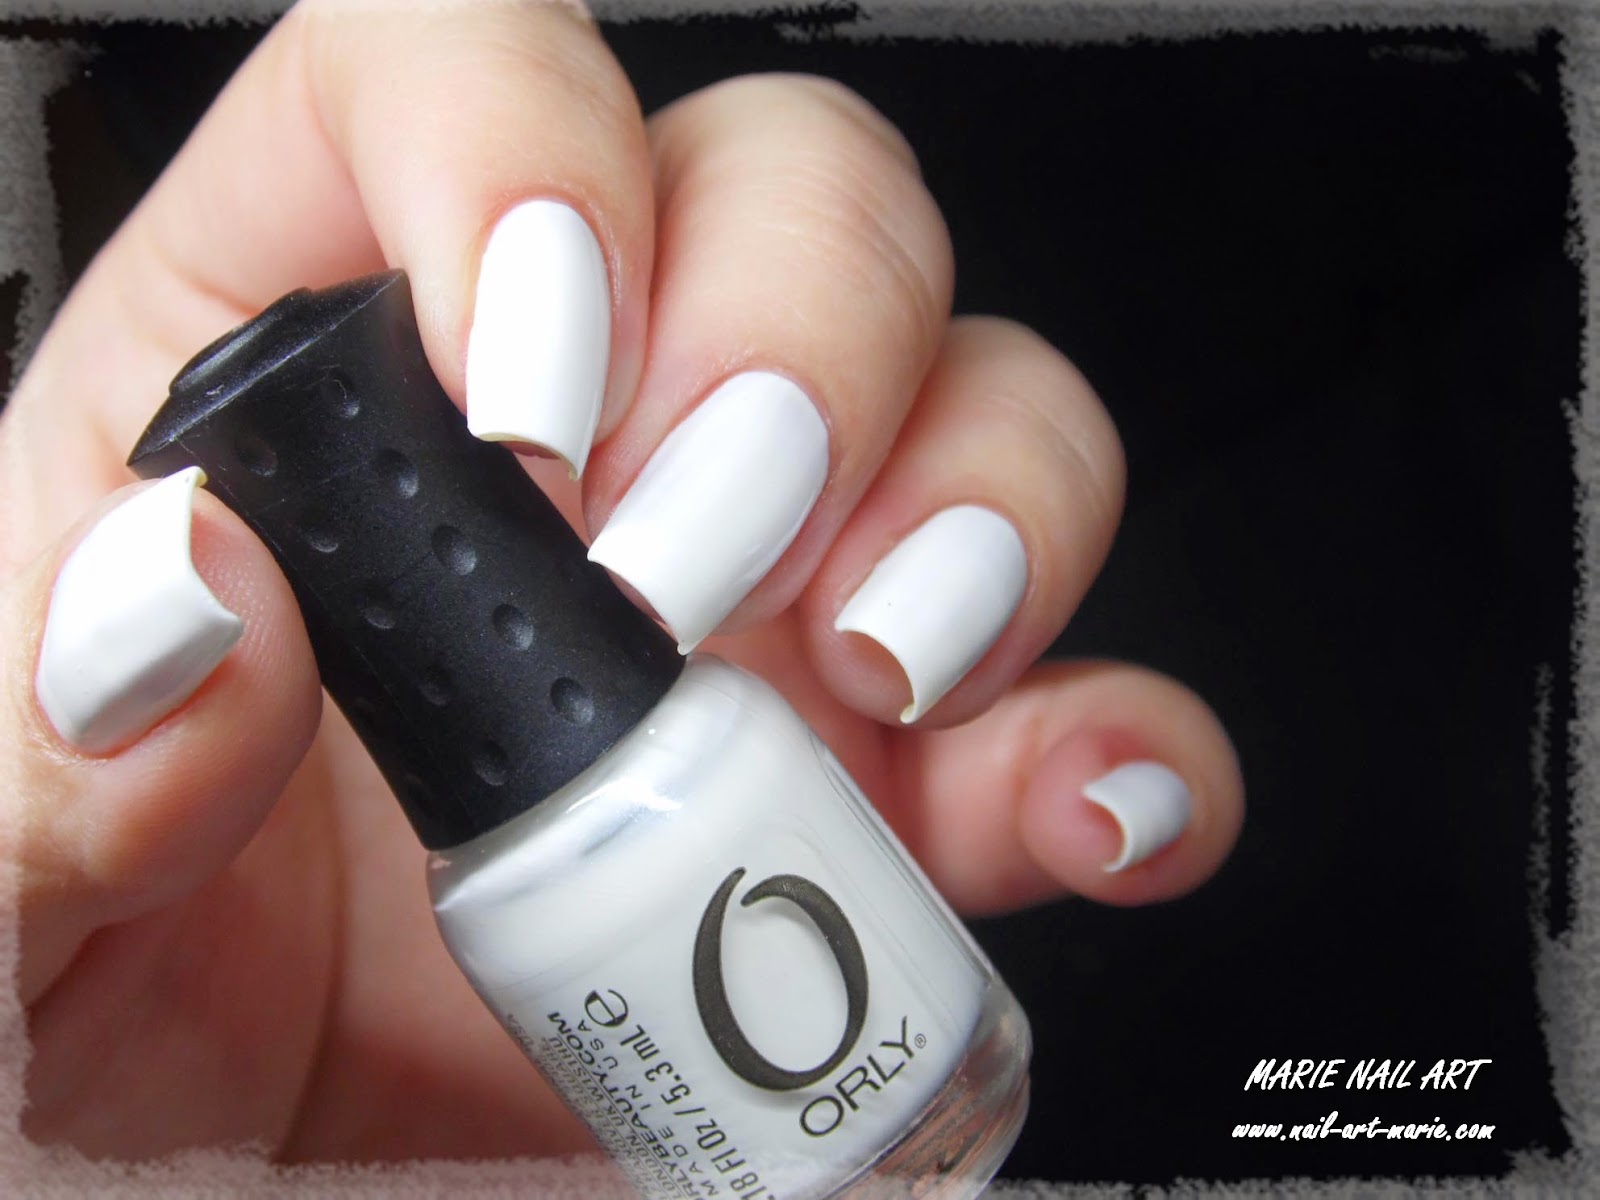 Orly Dayglow5